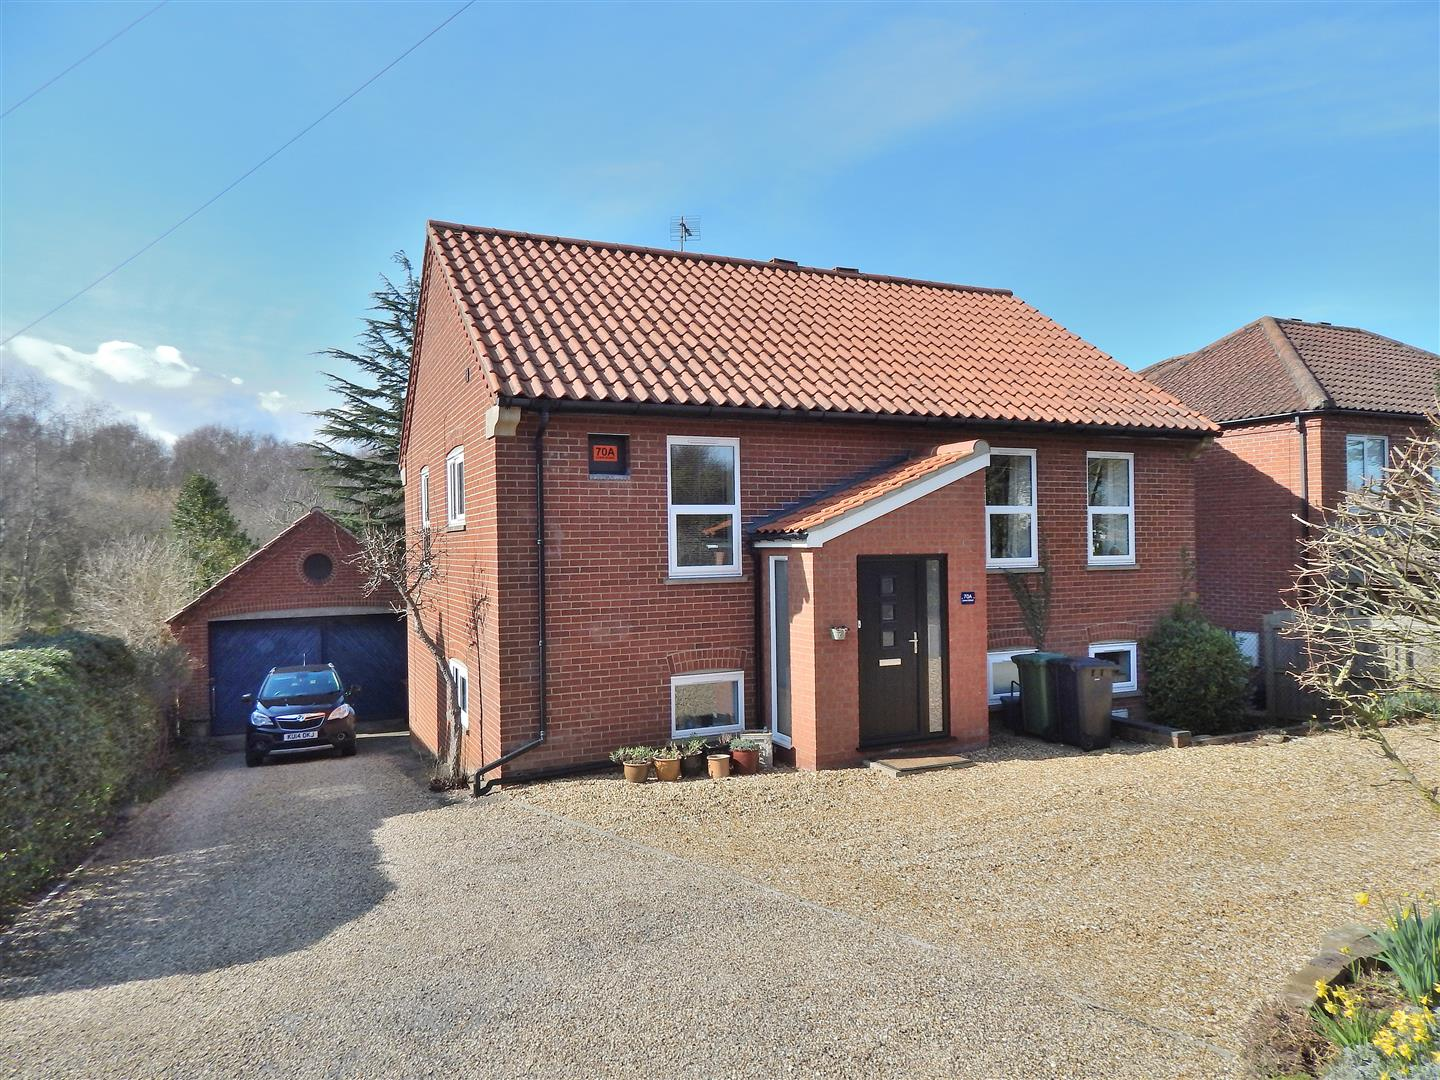 4 bed detached house for sale in King's Lynn, PE31 6LA, PE31